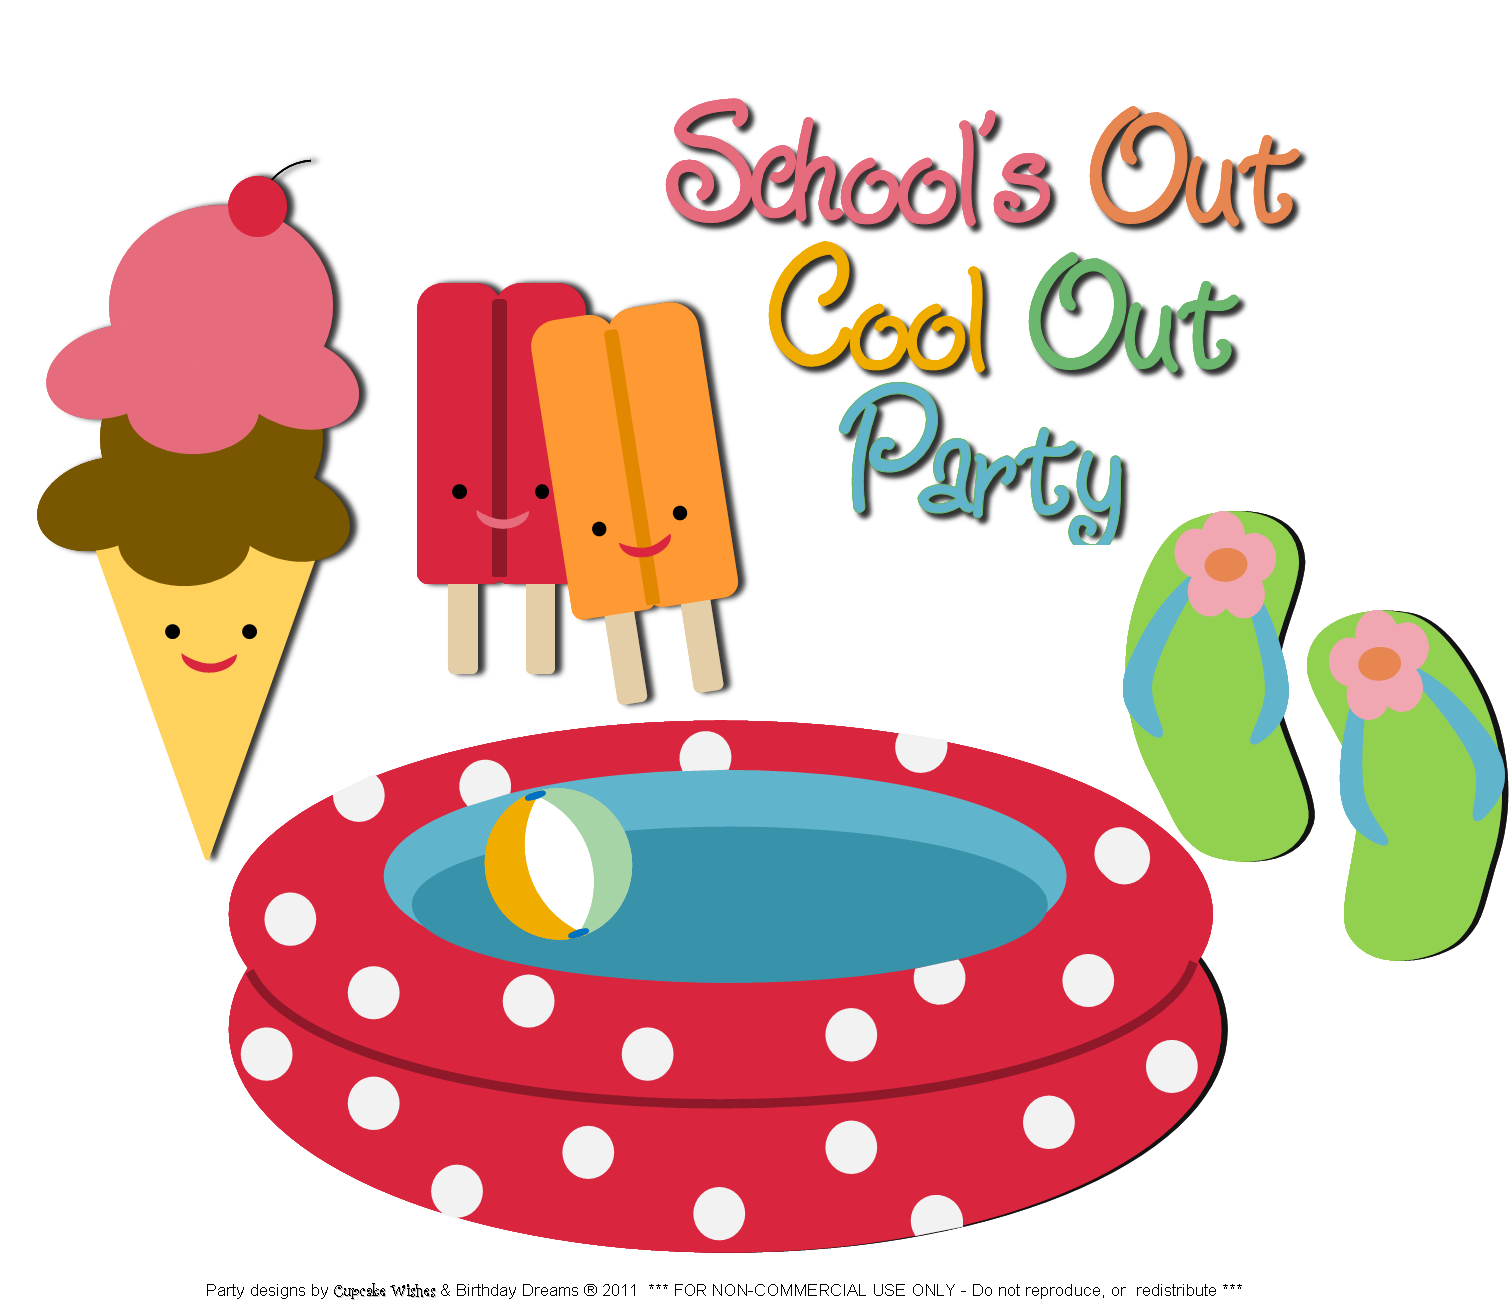 Free clipart school out summer graphic freeuse Schools Out Party Clipart graphic freeuse